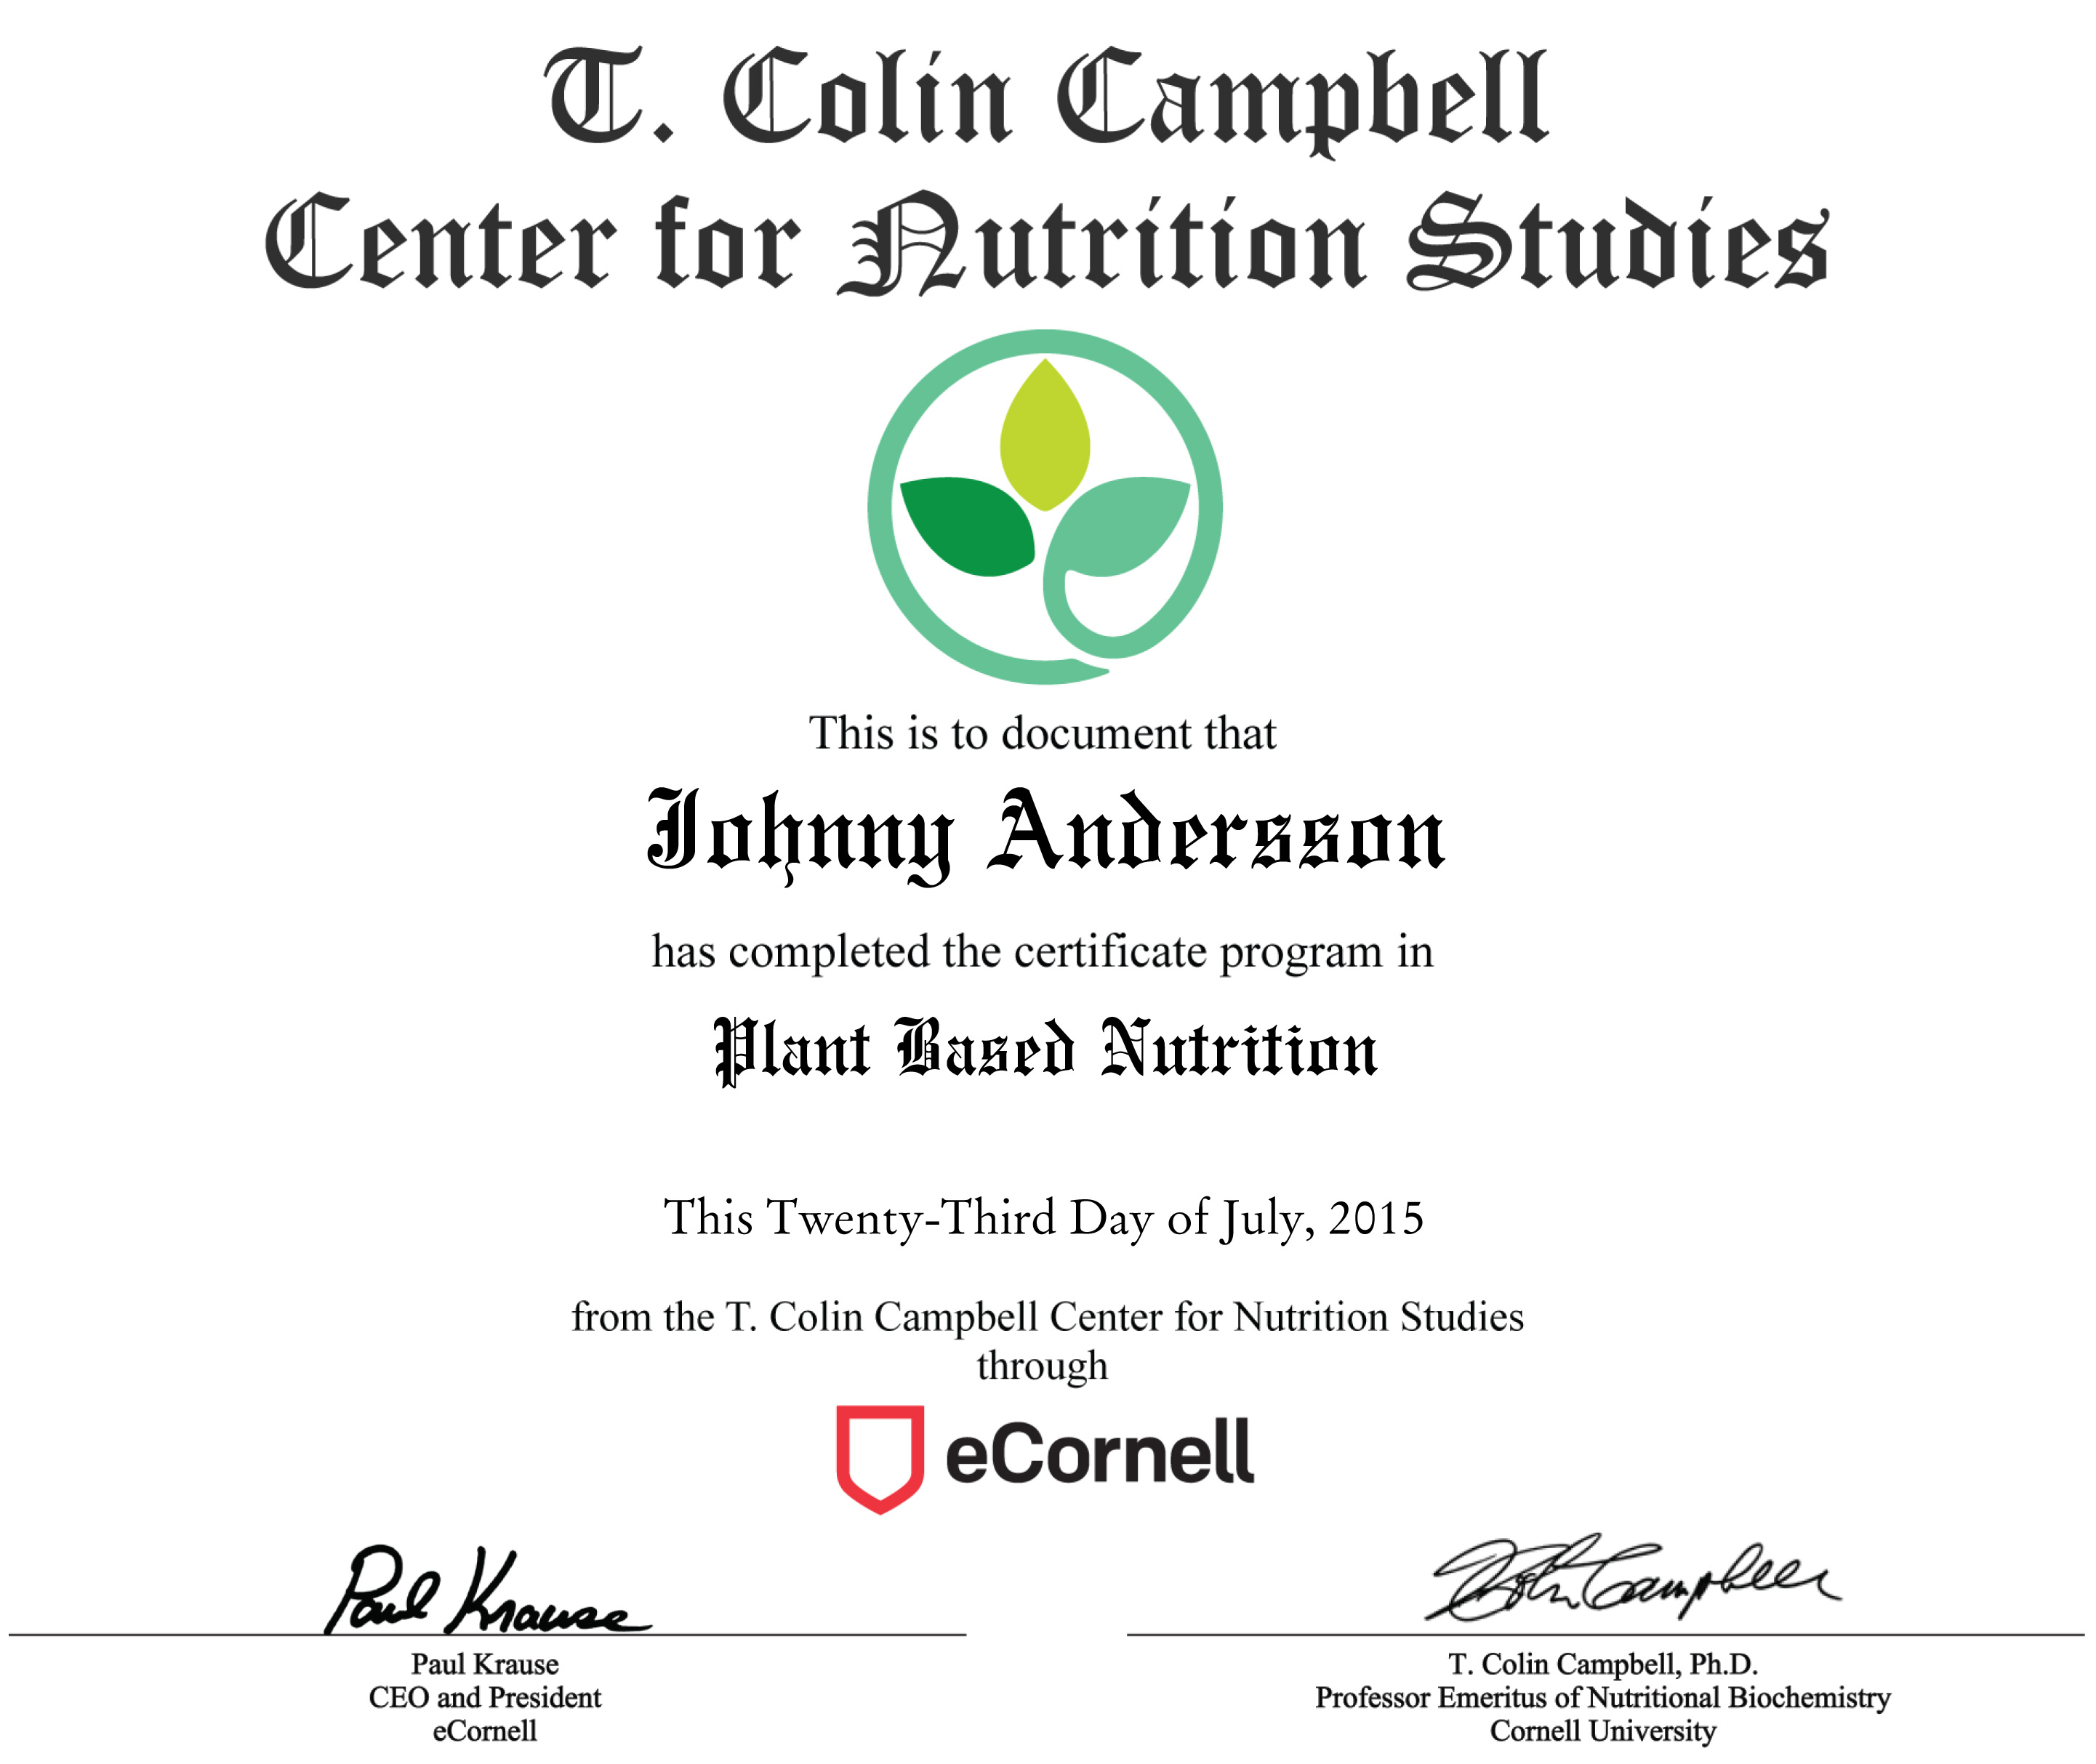 Pland-Based Nutrition Certificate